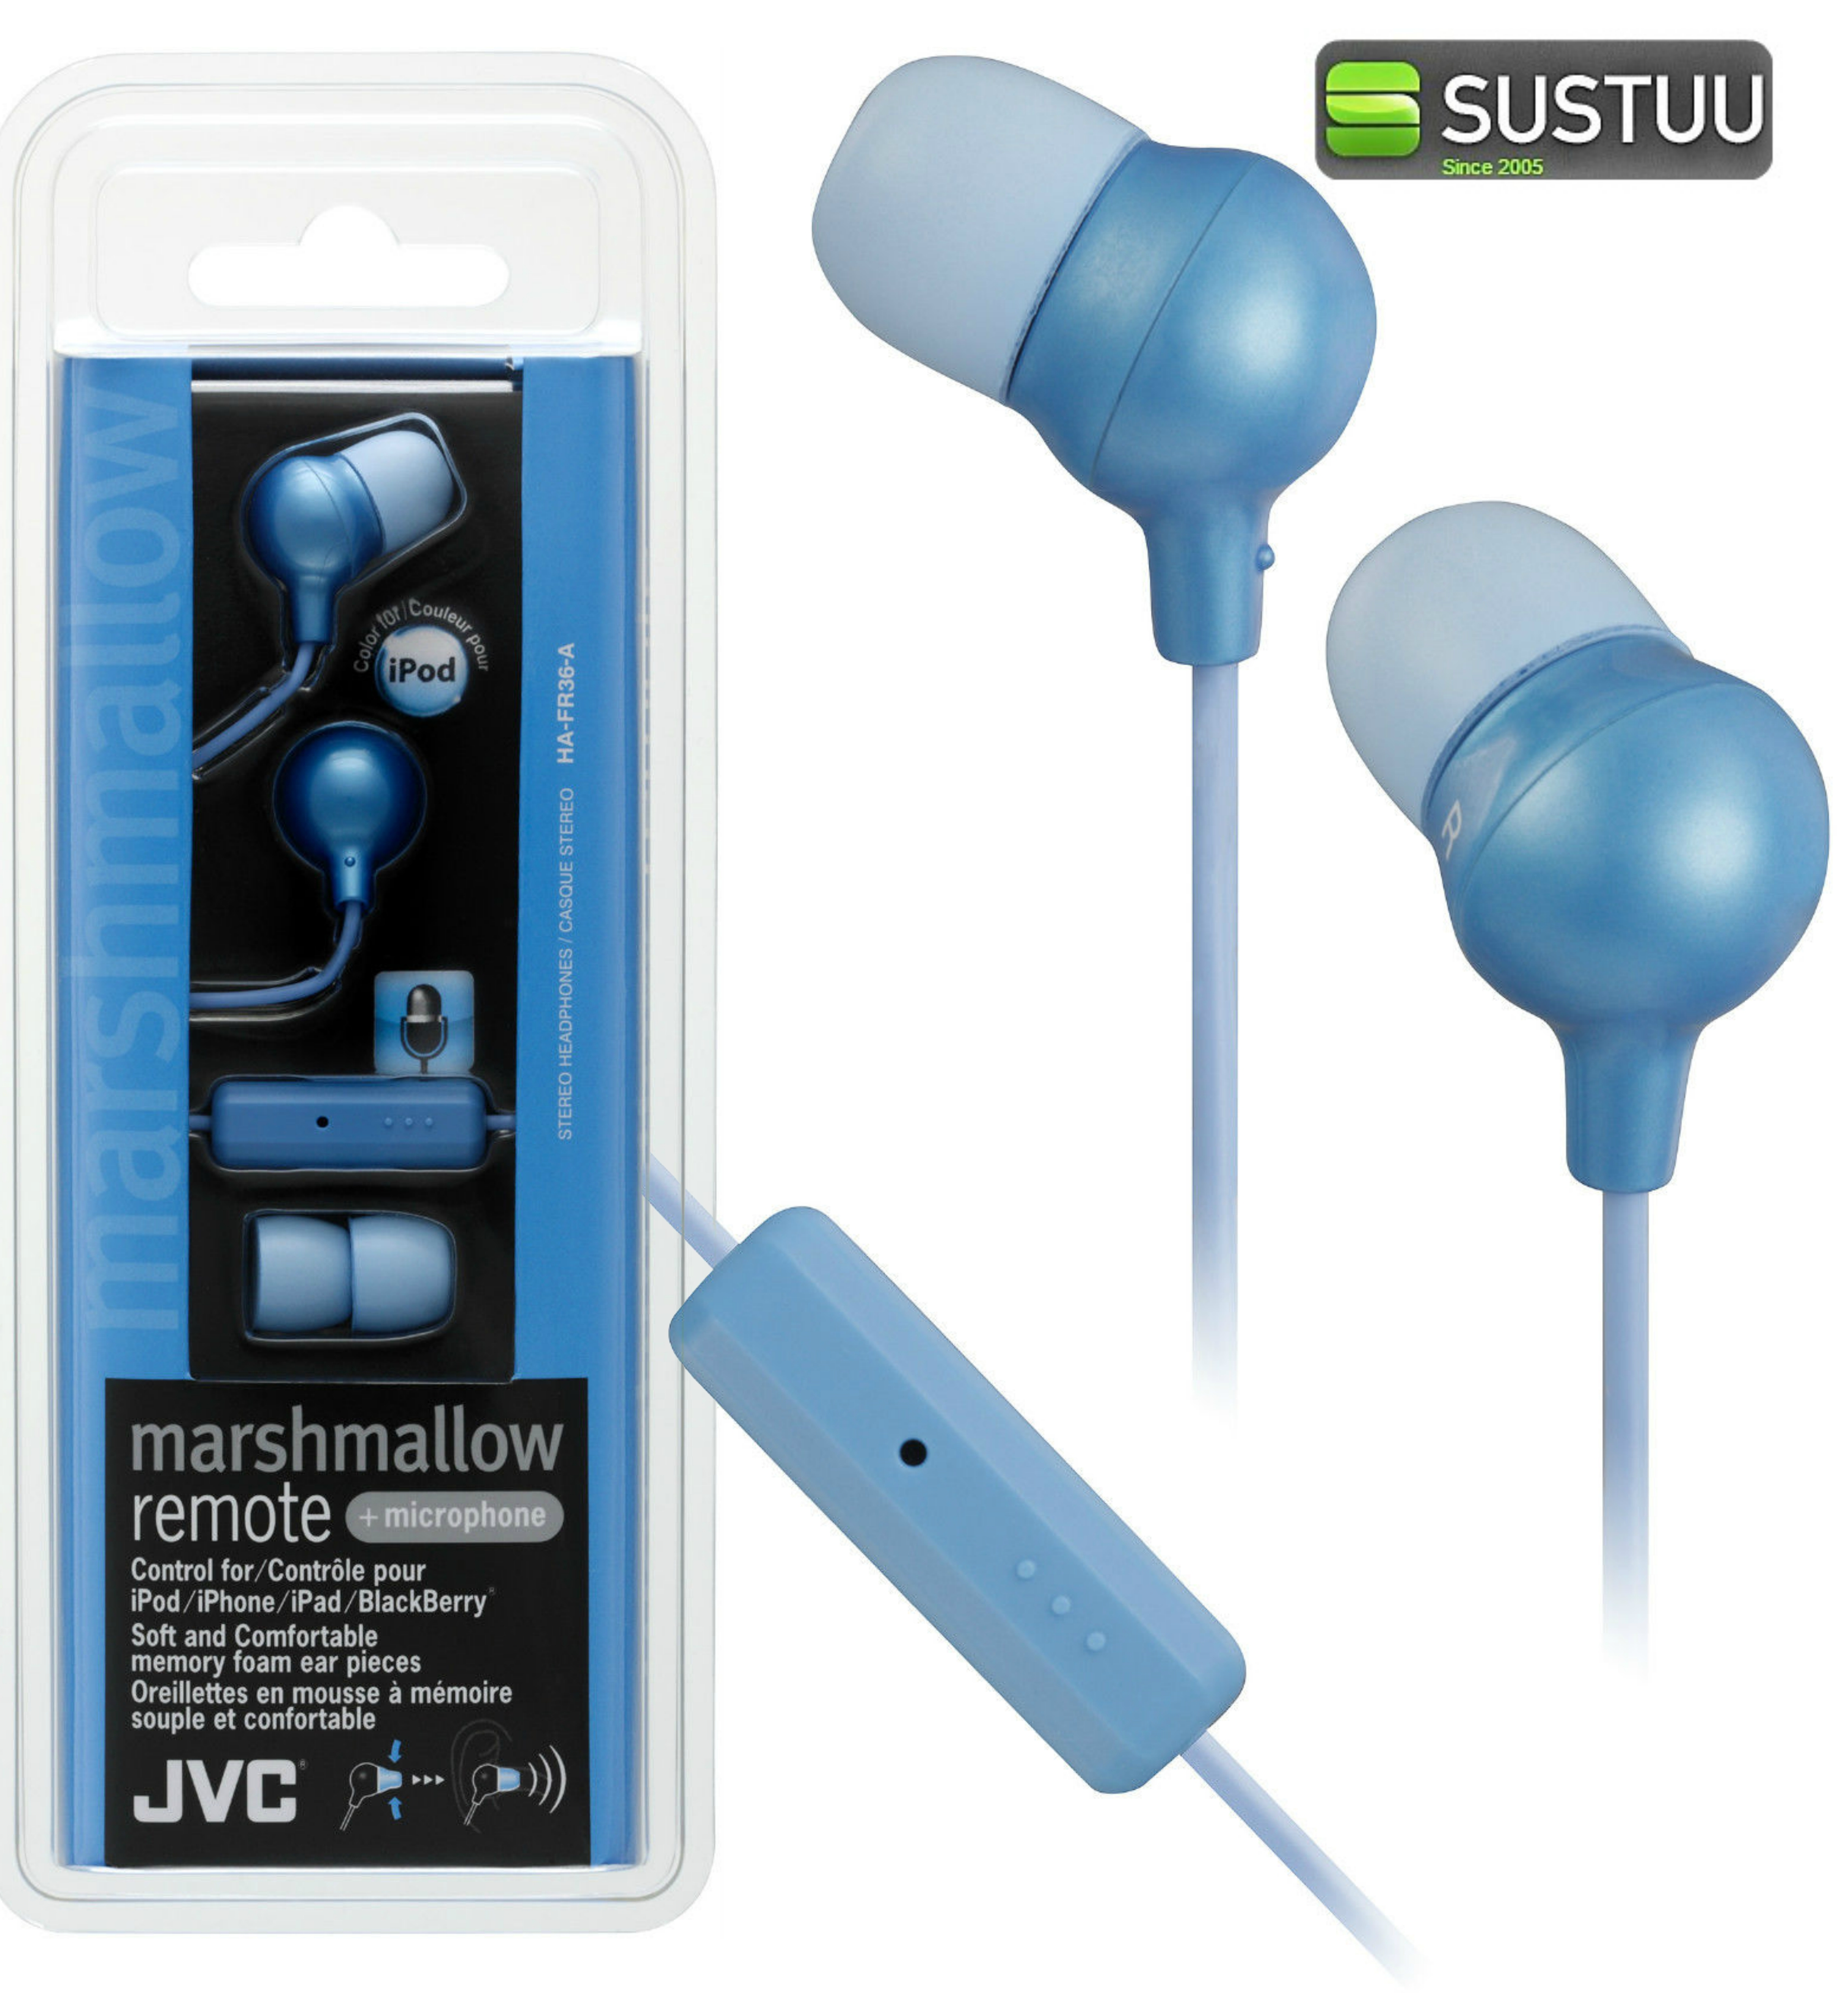 JVC Marshmallow REMOTE Control + Mic Stereo Earphones BLUE for iPhone iPod iPad